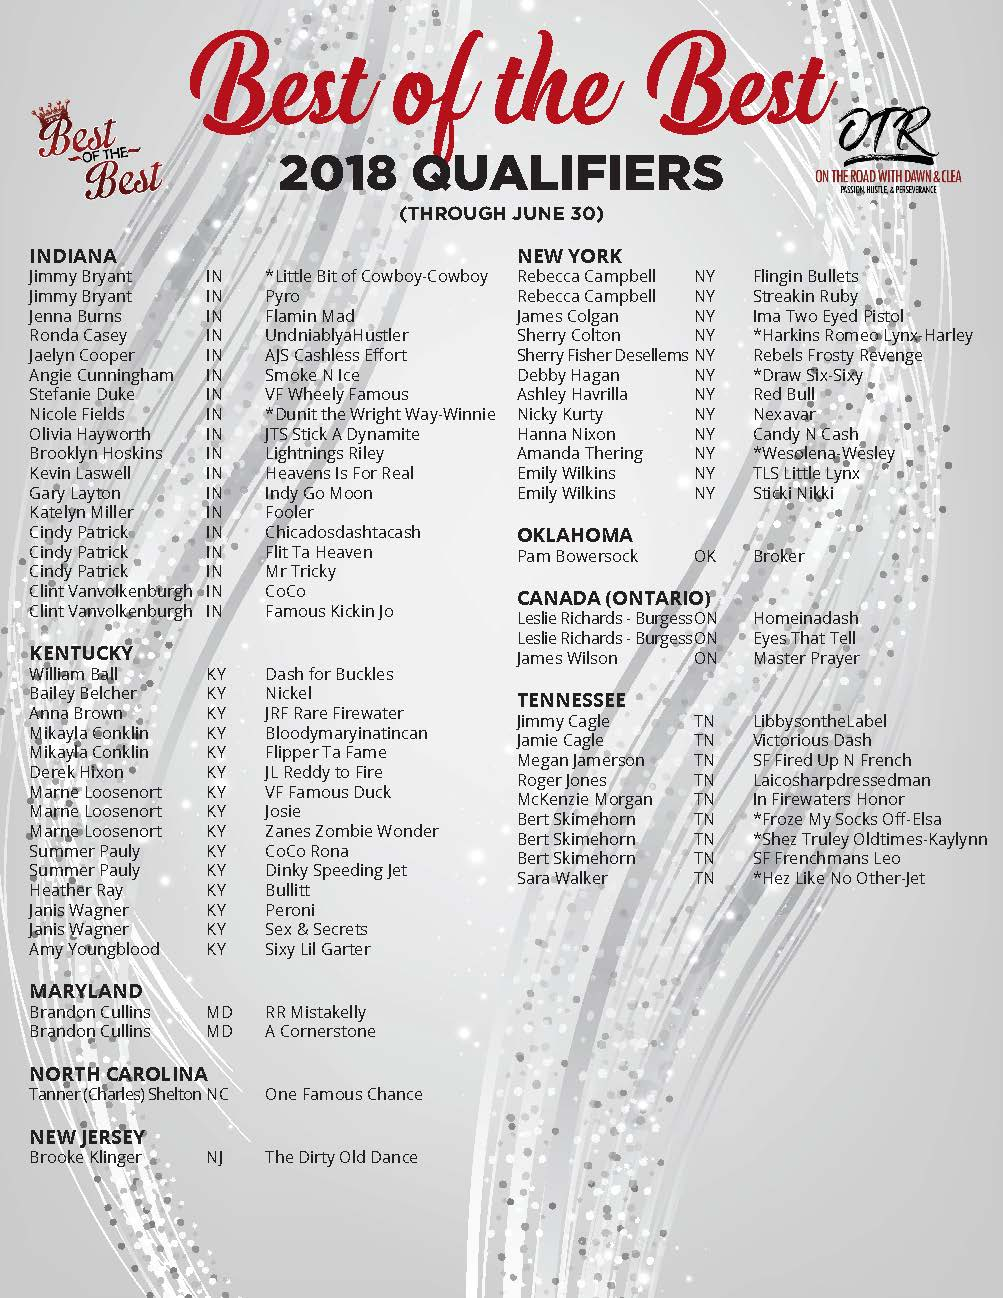 BOTB_Qualifiers_2018_LIST_Page_2